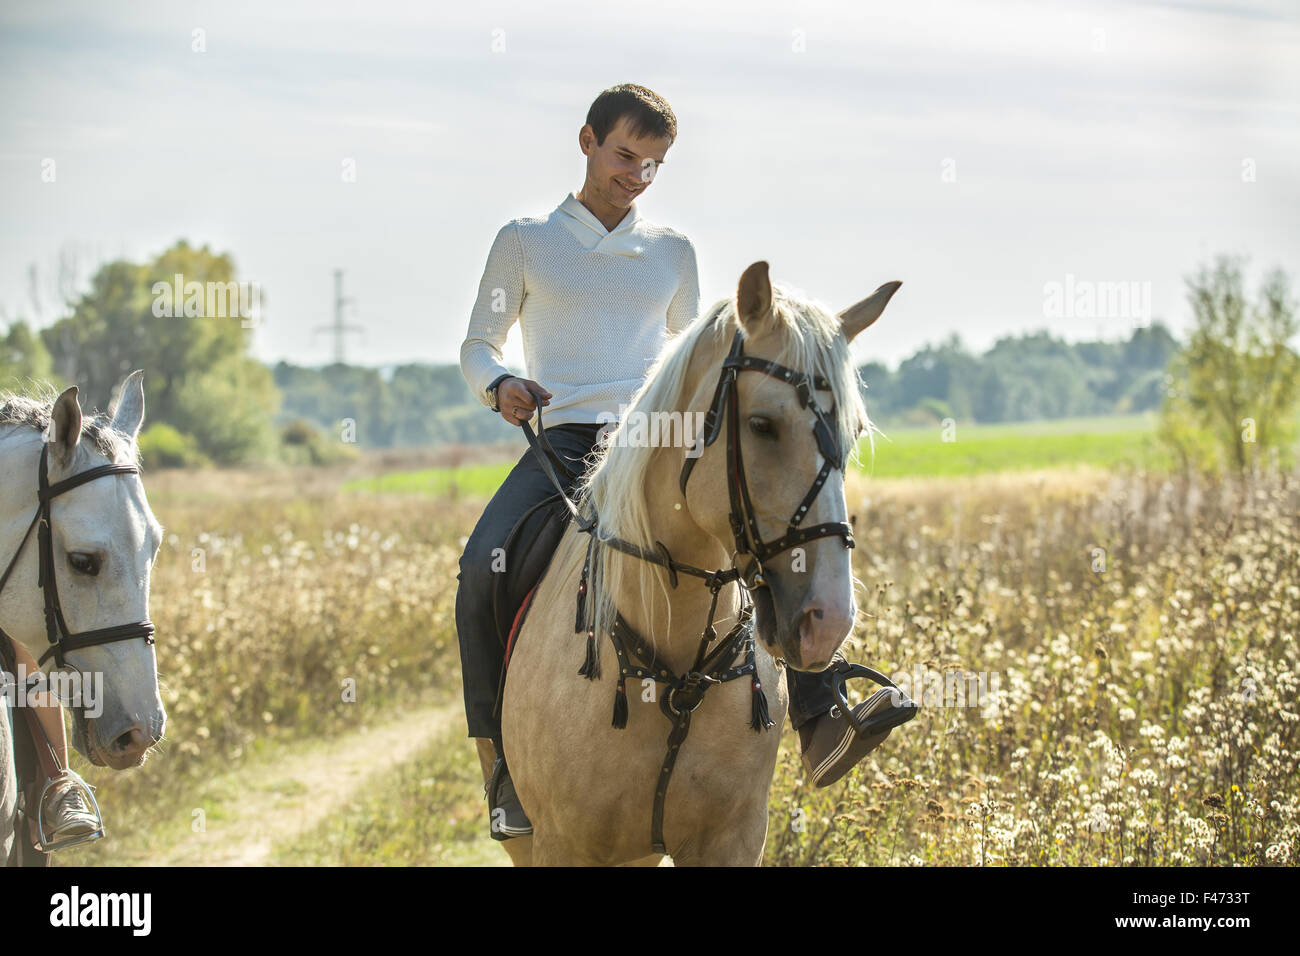 Attractive man on horseback - Stock Image